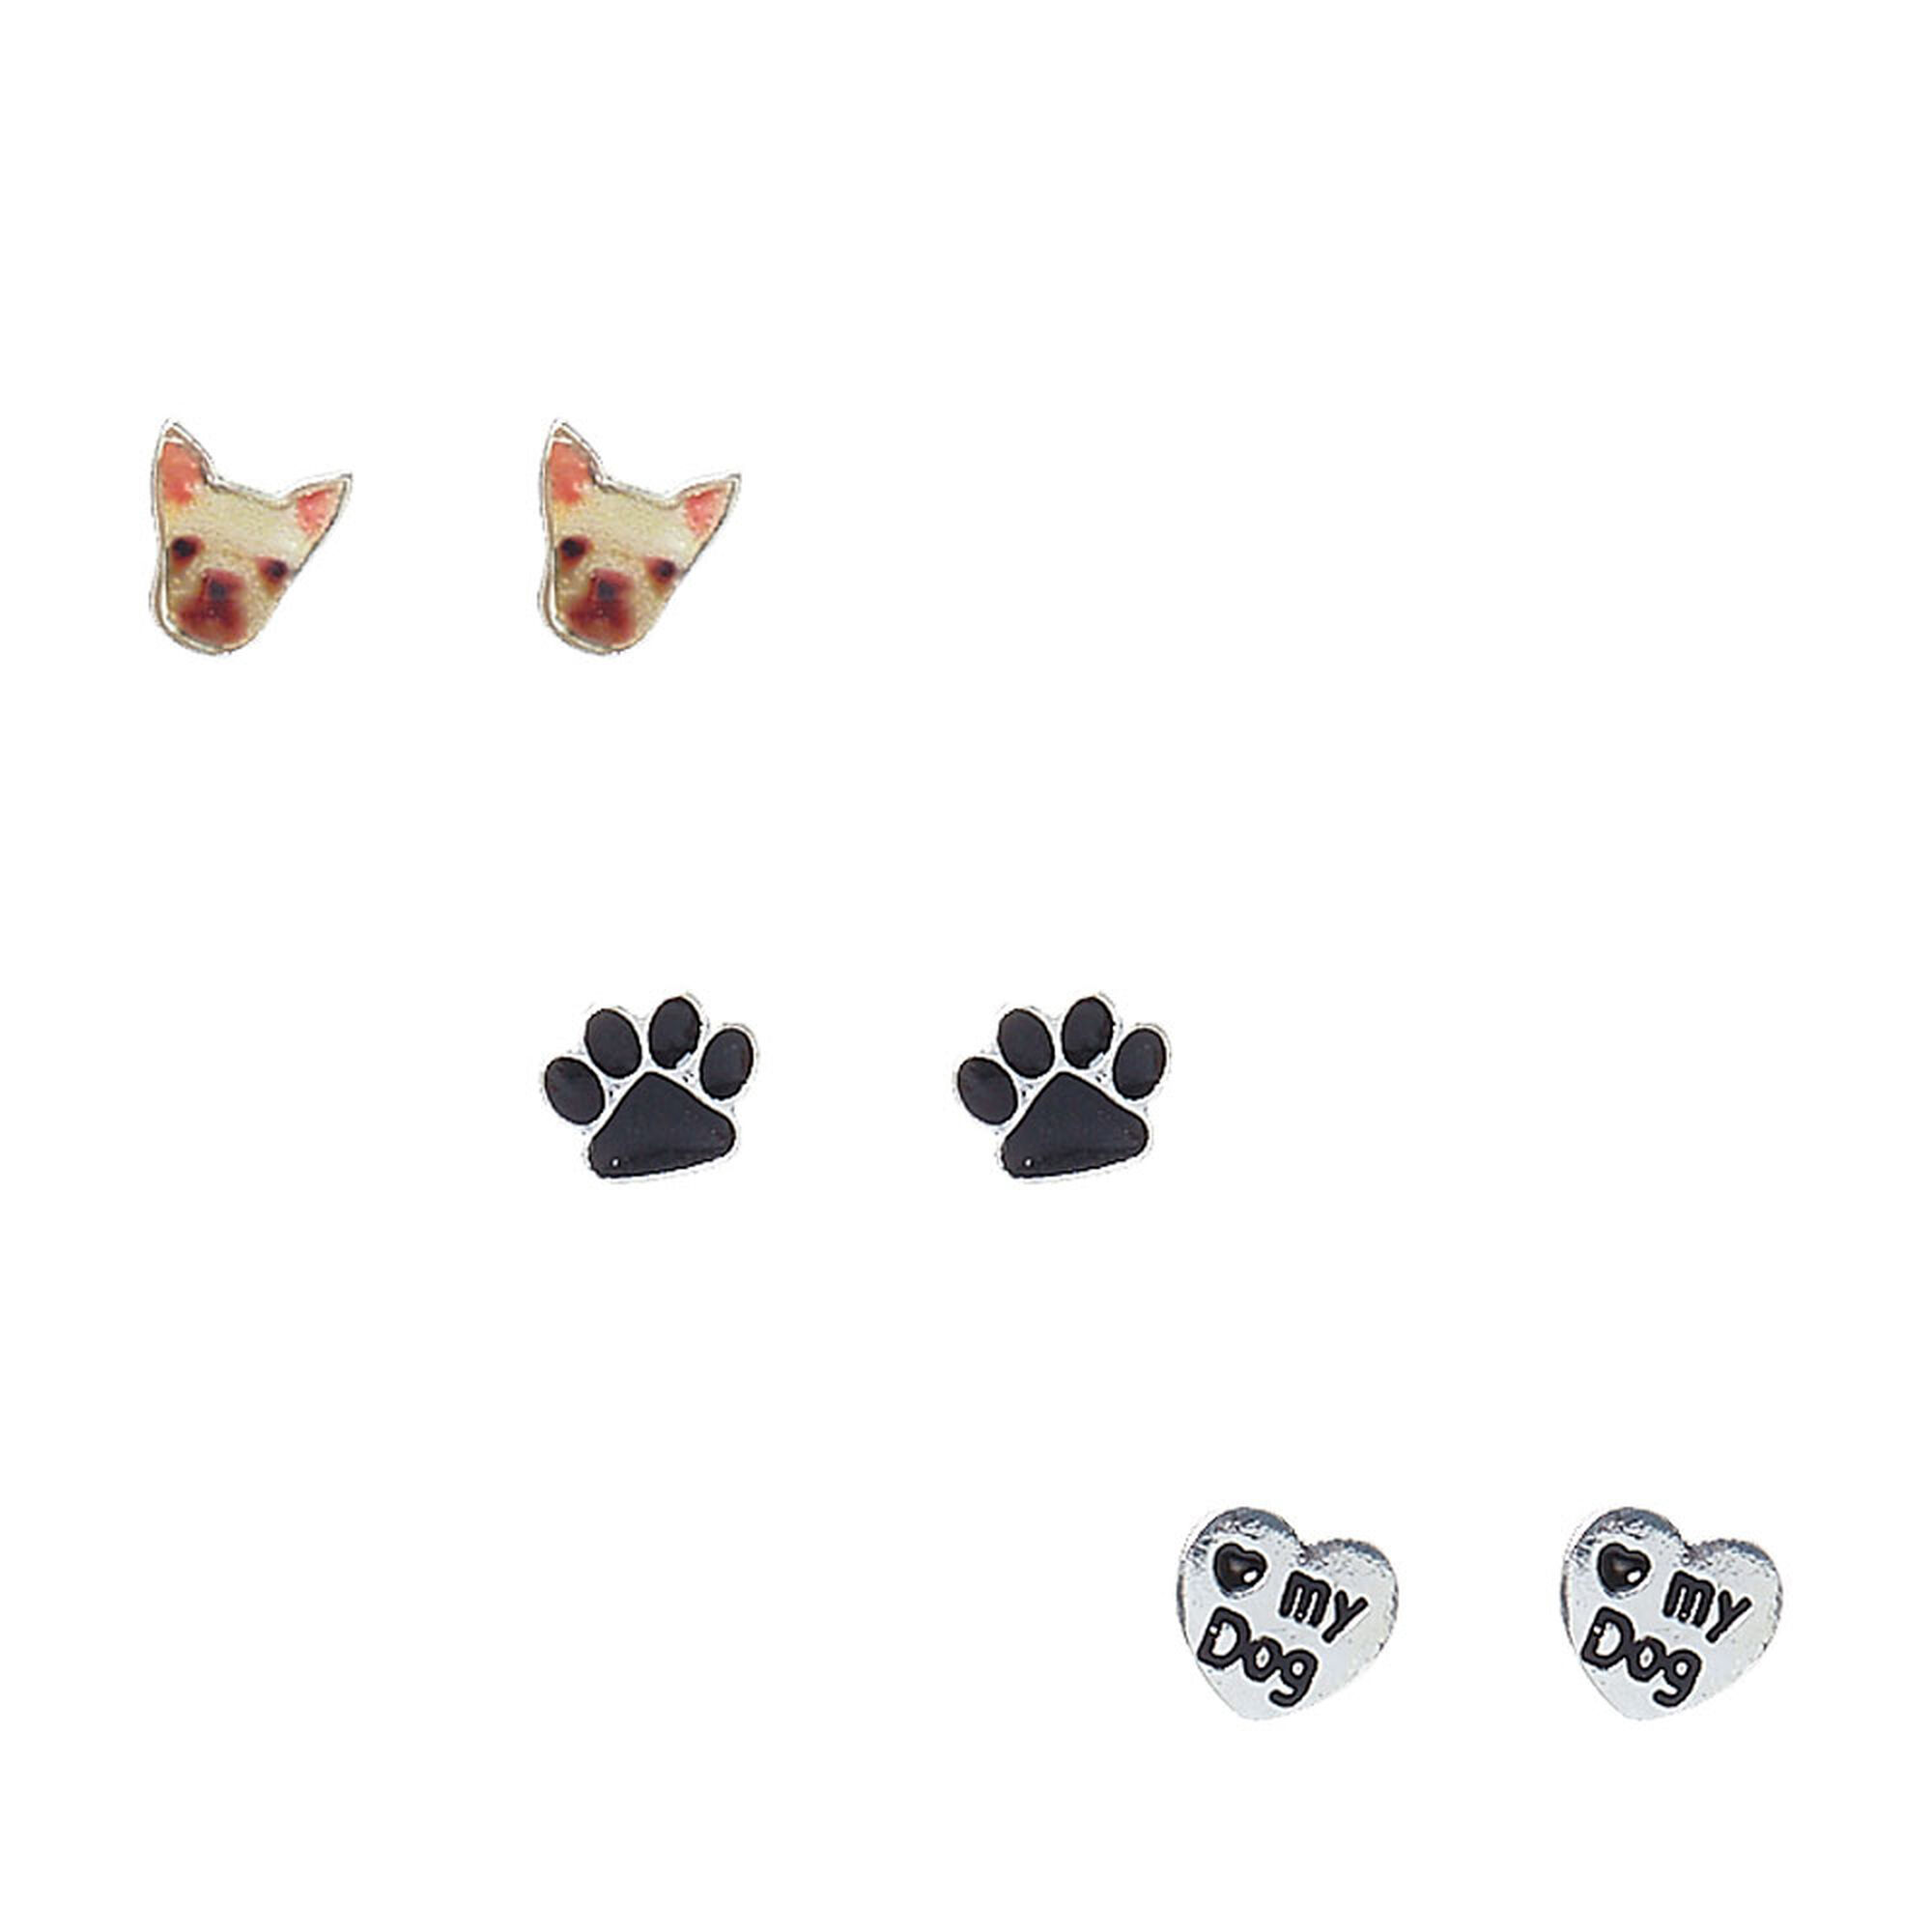 women fashion earrings cat and for cute dog stud tomtosh new products com brincos jewelry print jisensp paw hot collections bijoux nuroco